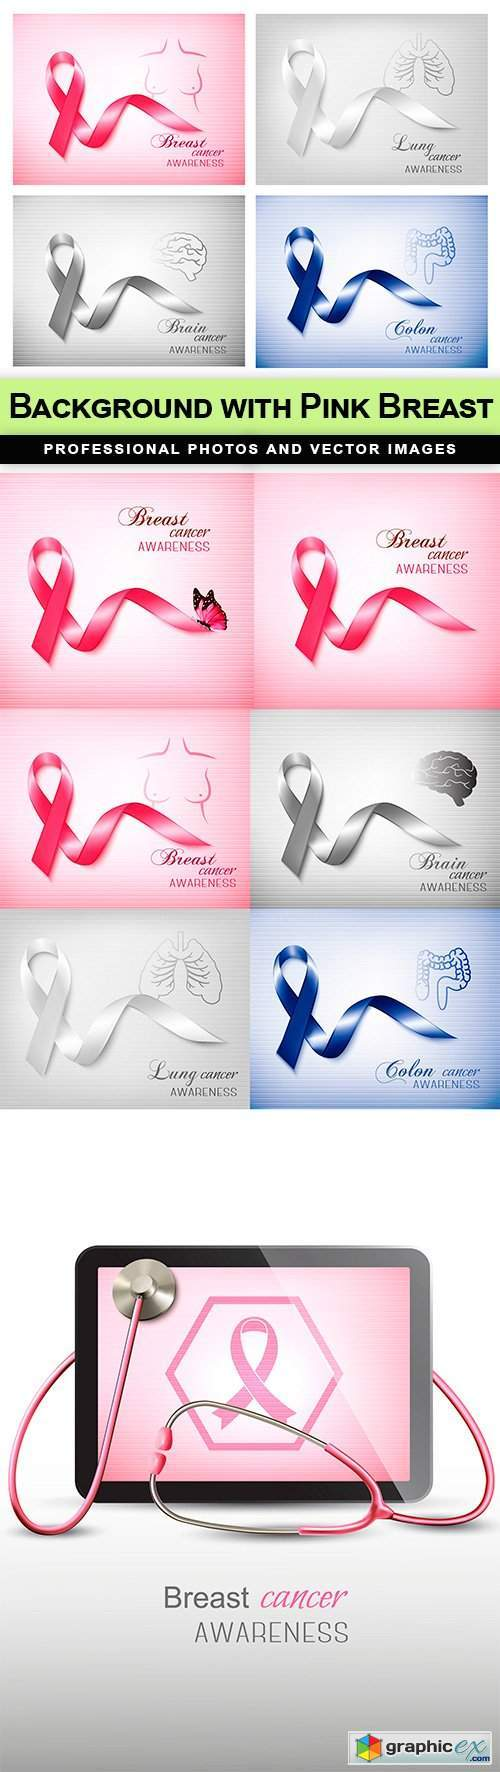 Background with Pink Breast - 8 EPS